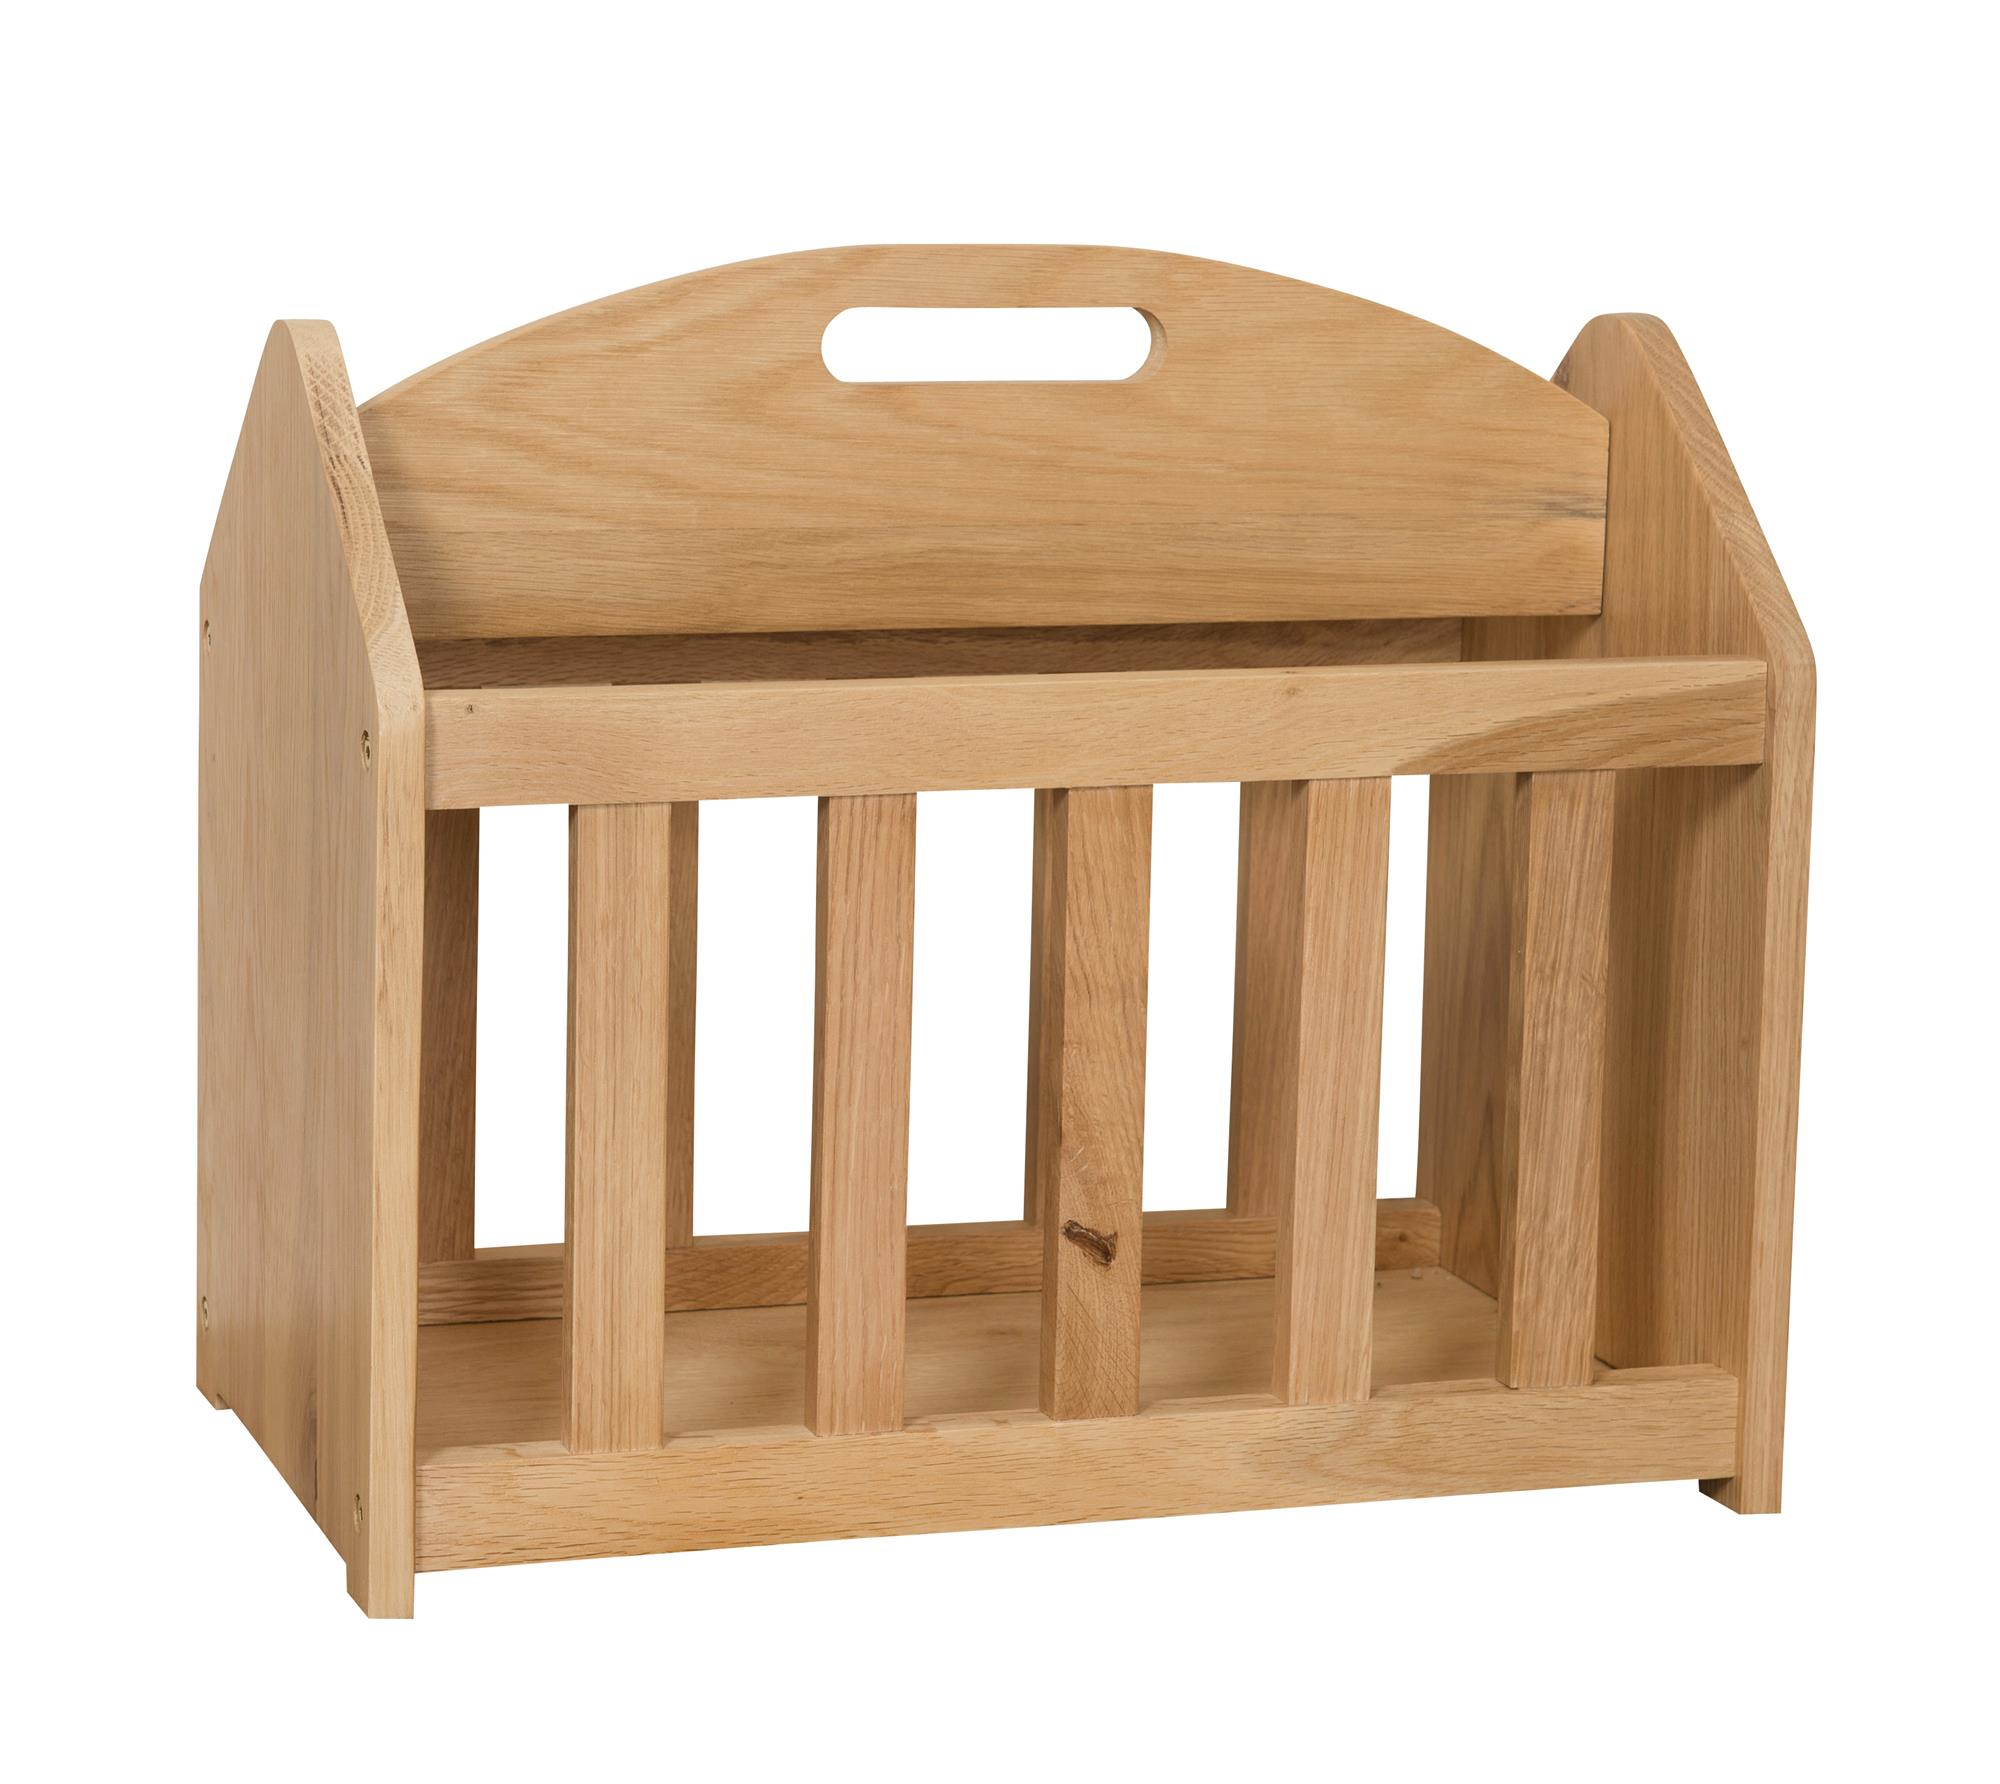 OAK - MAGAZINE RACK